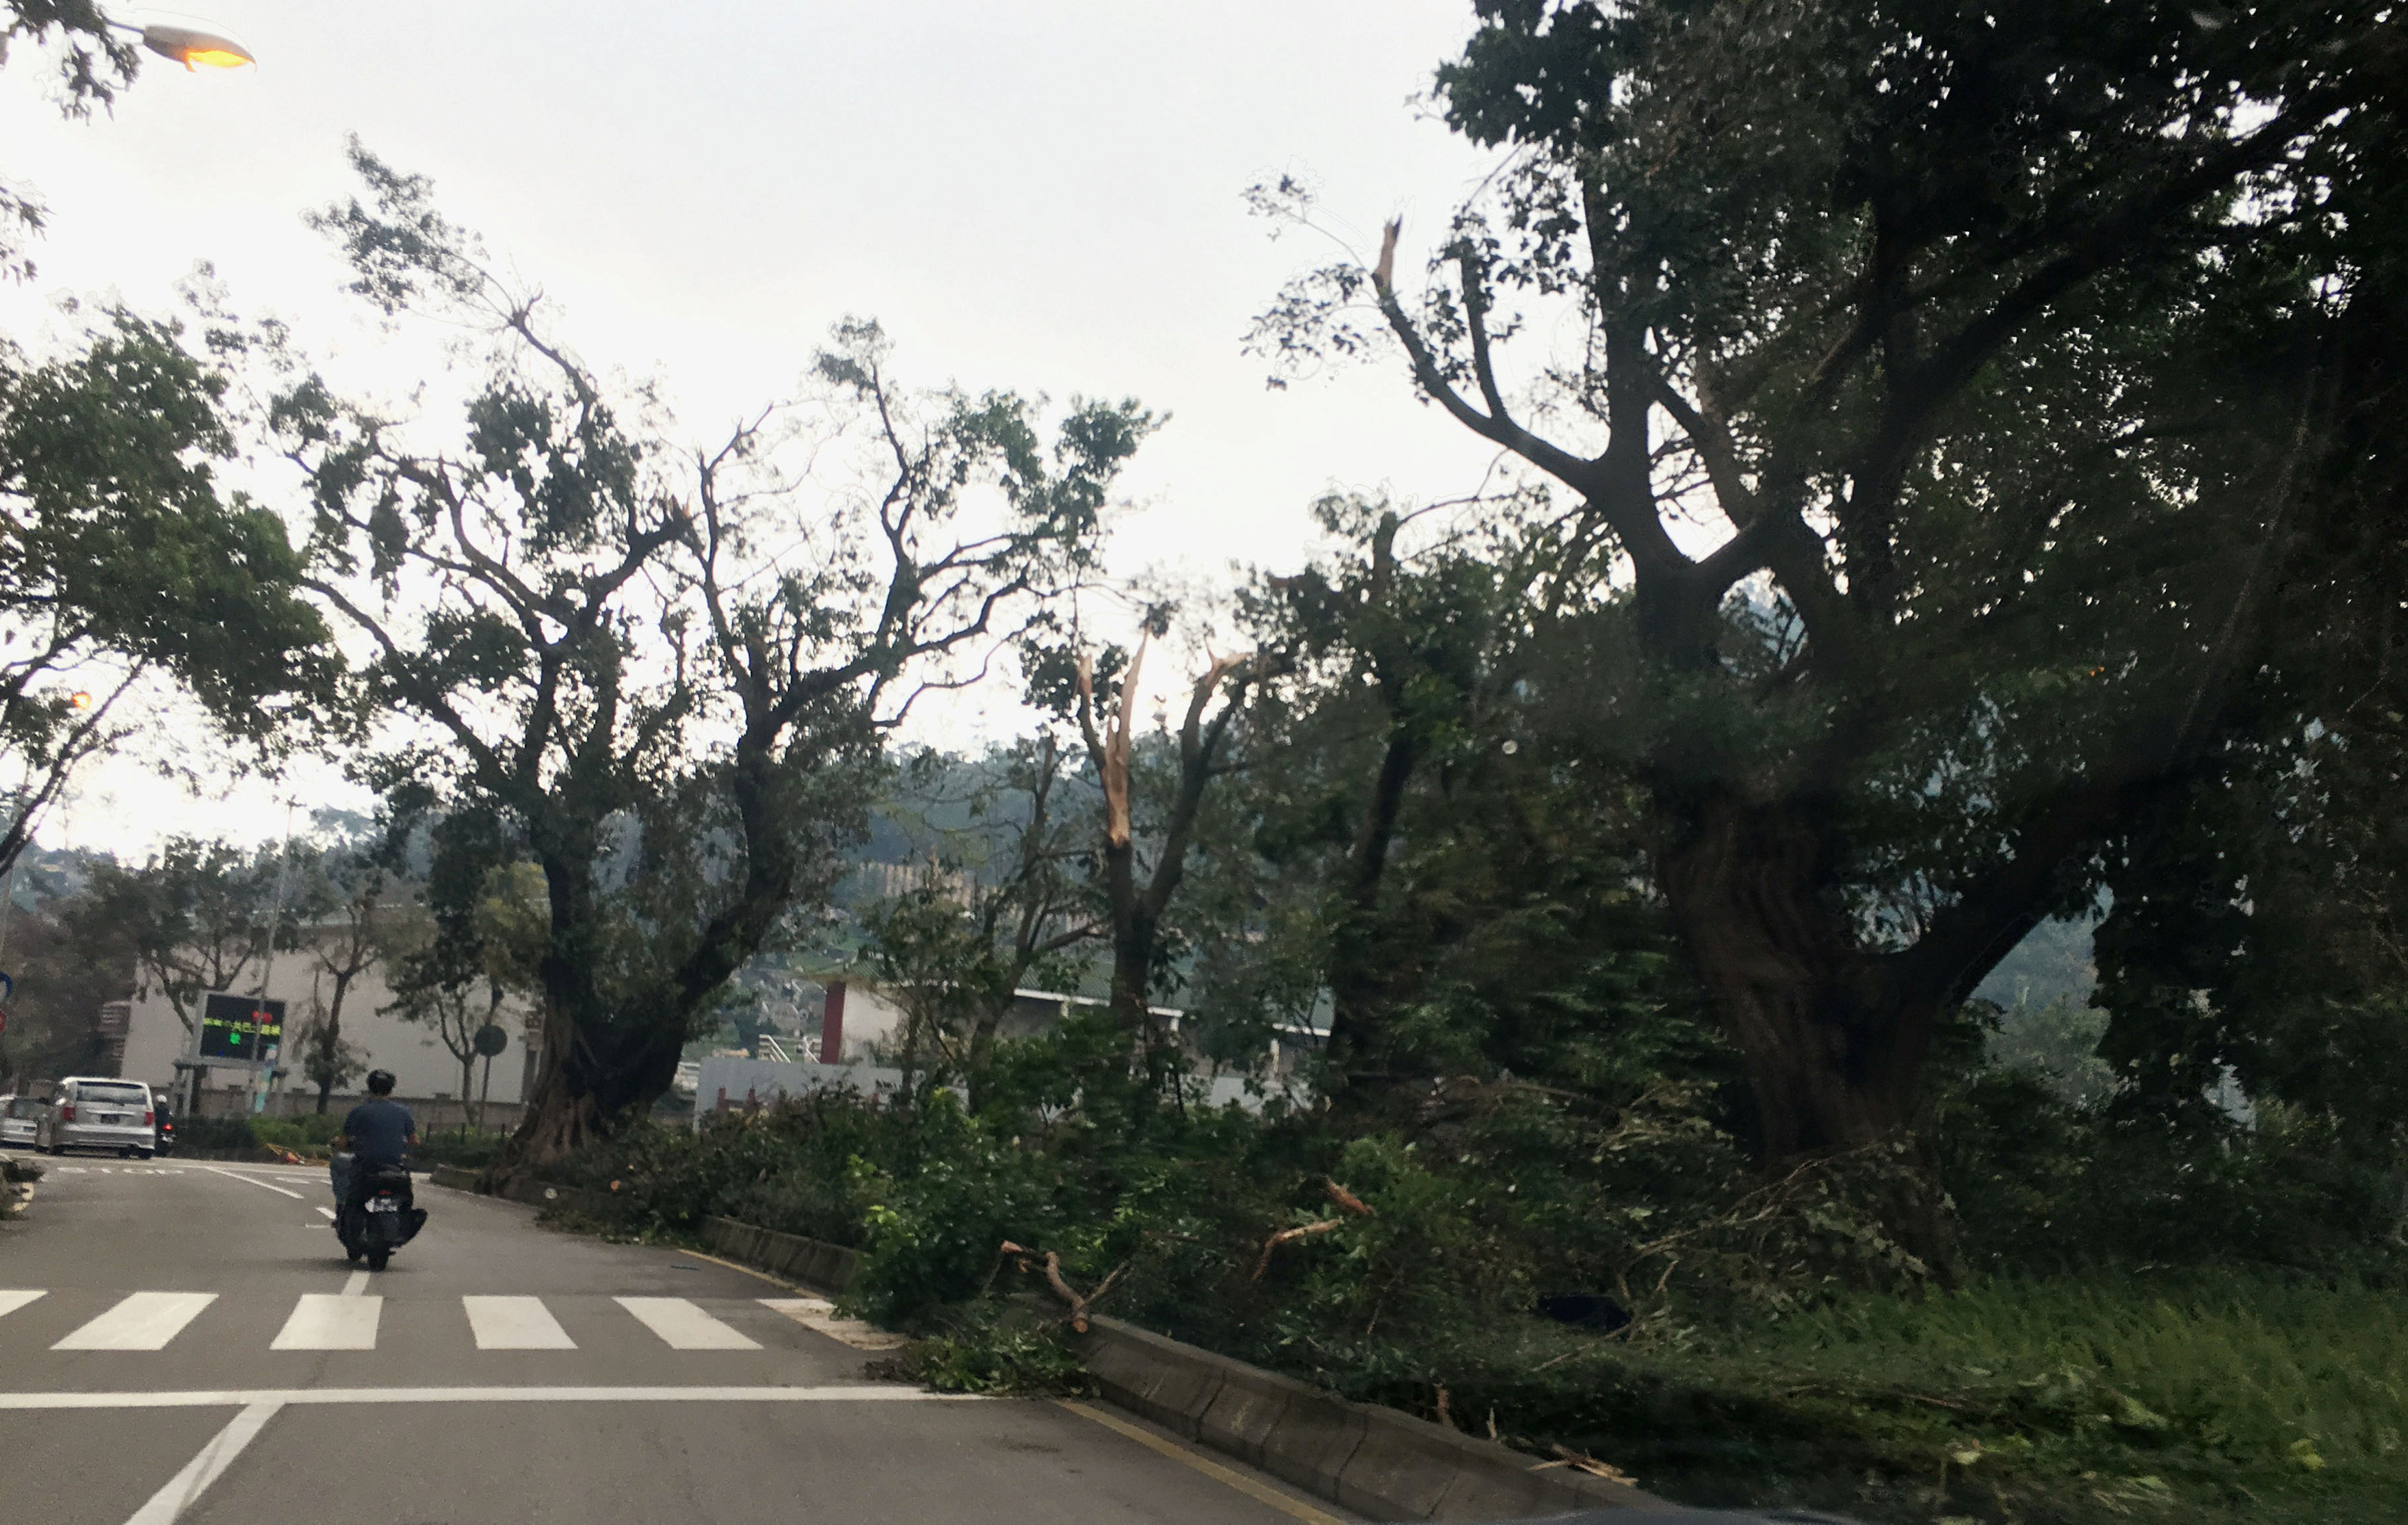 Fallen trees and debris are seen on a road following Typhoon Hato in Macau, China, August 24, 2017 in this picture obtained from social media. Karen Yung via REUTERS